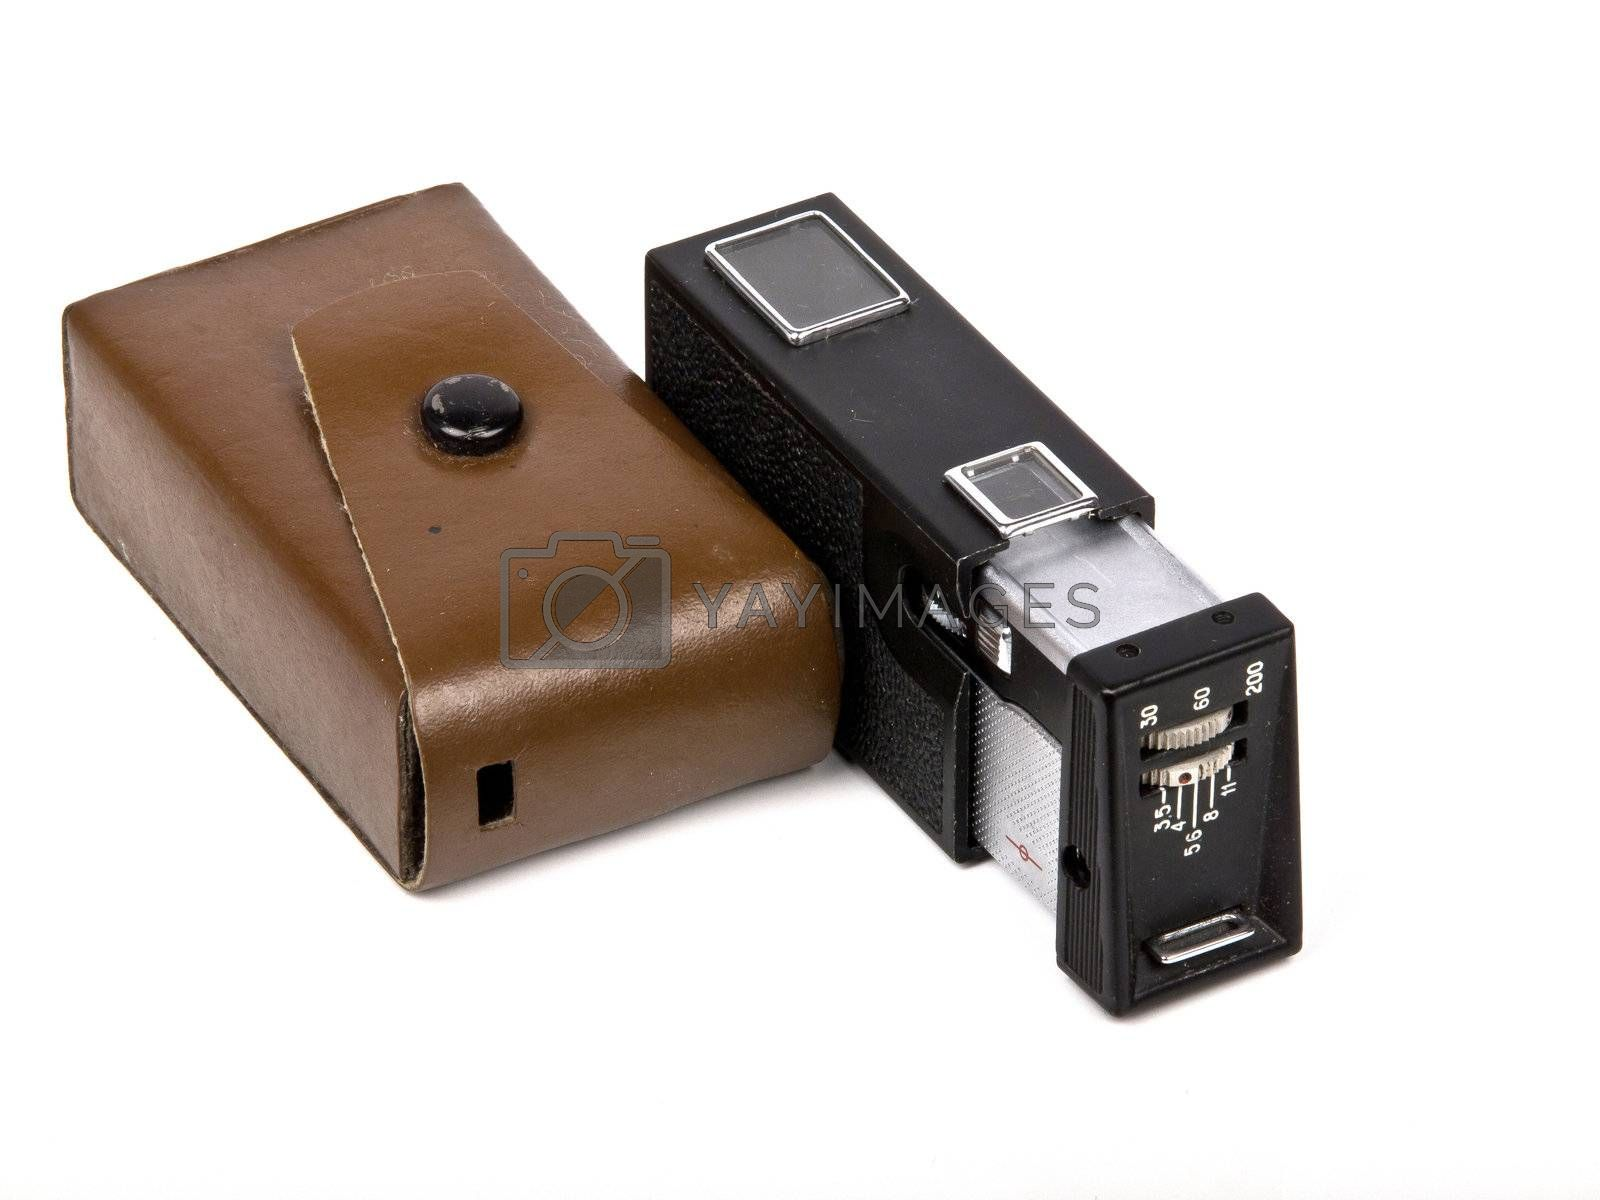 old pocket photo camera made in Russia